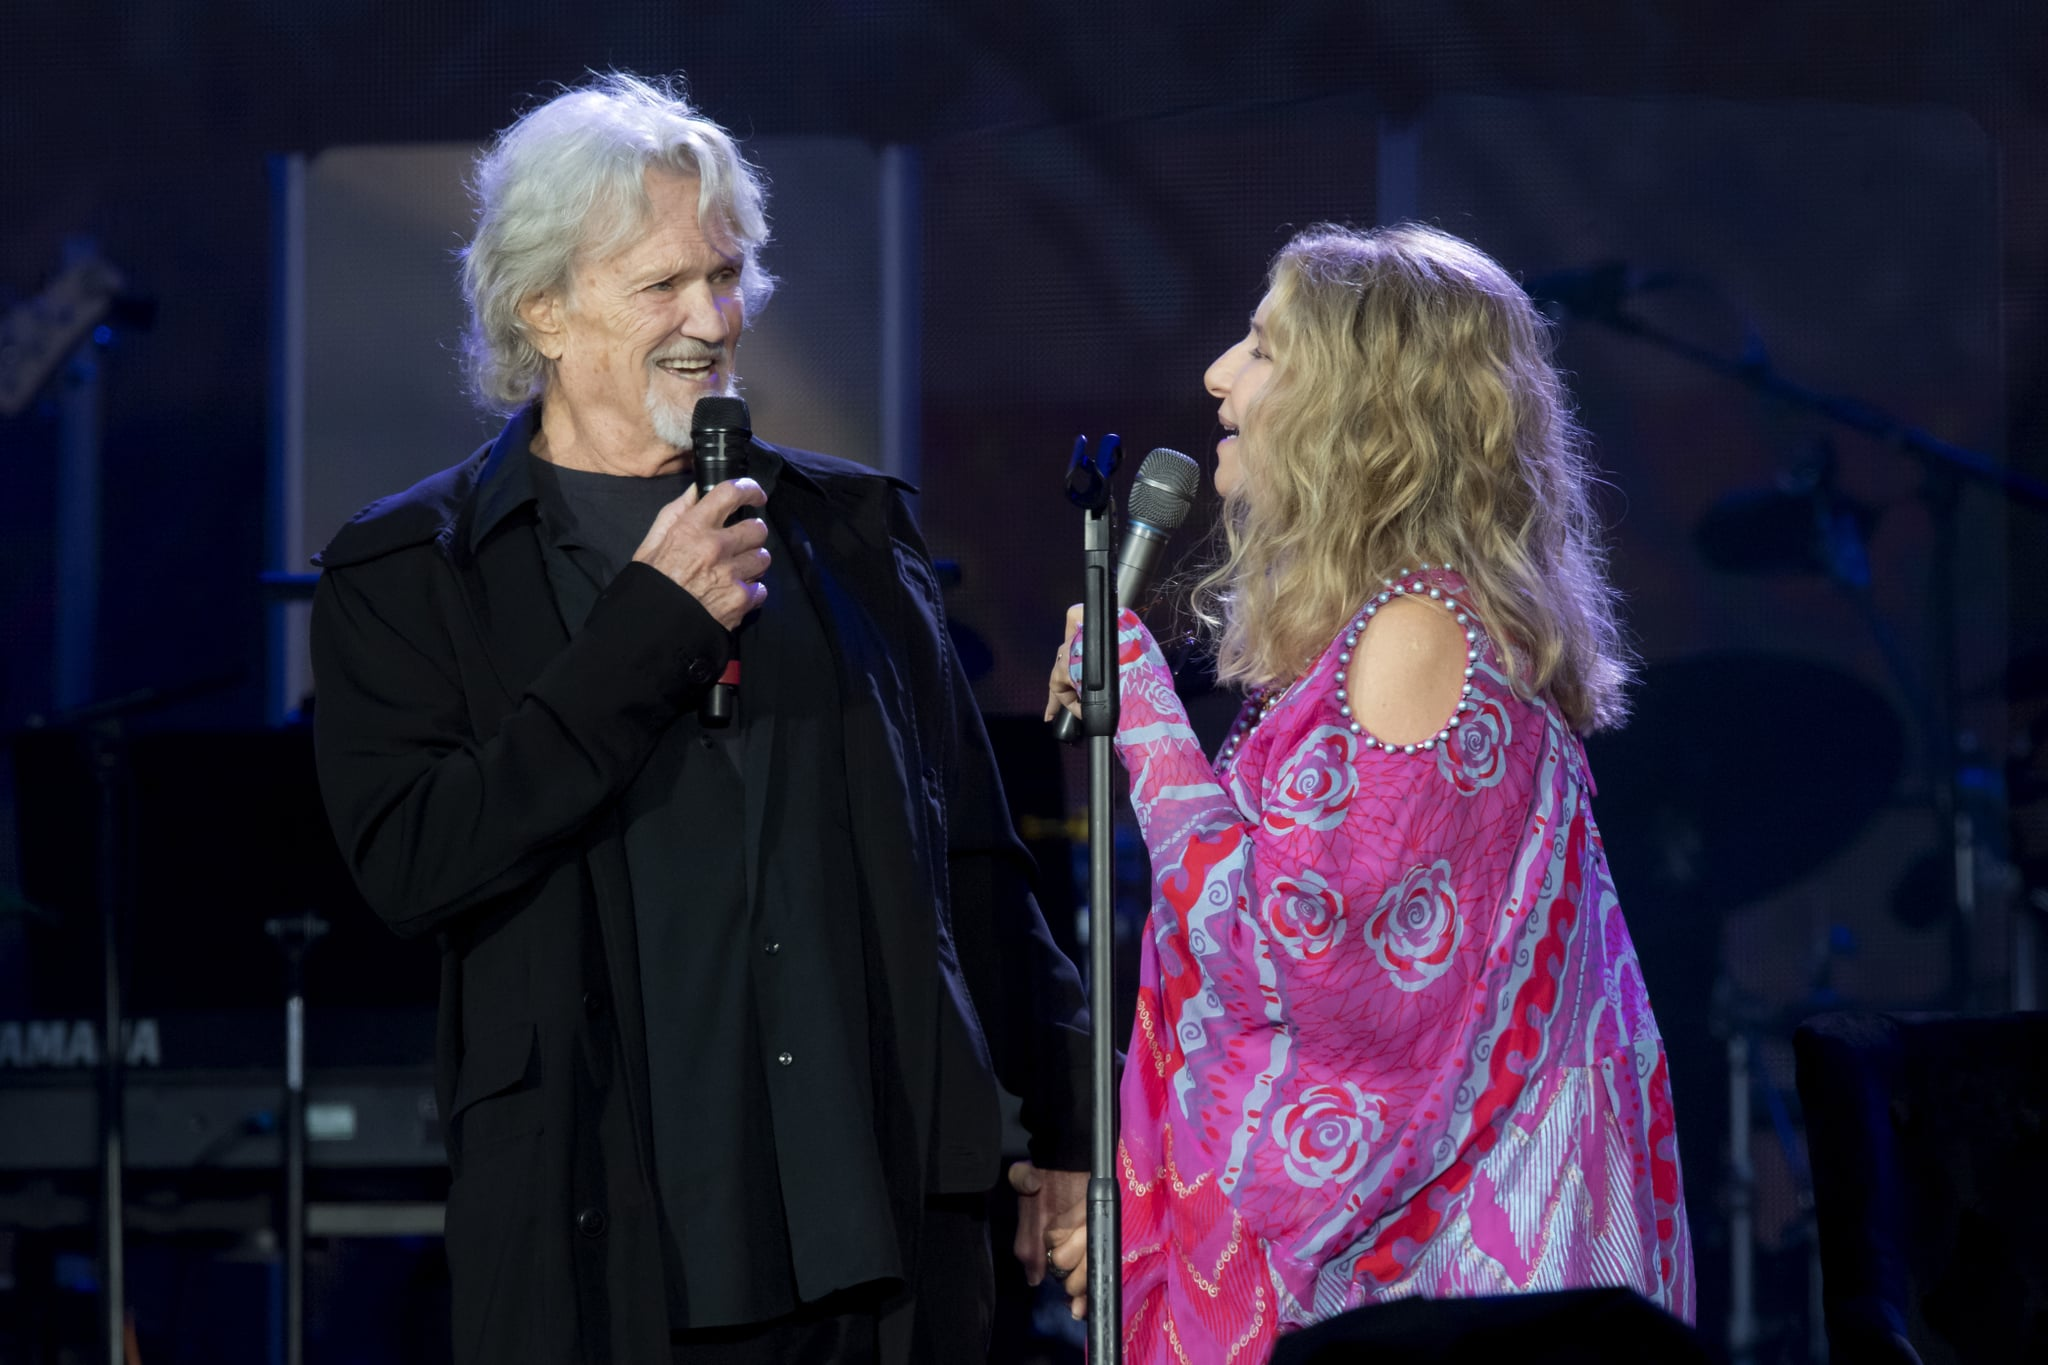 LONDON, ENGLAND - JULY 07:  Barbra Streisand performs with Kris Kristofferson during Barclaycard Presents British Summer Time Hyde Park at Hyde Park on July 07, 2019 in London, England. (Photo by Dave J Hogan/Getty Images)